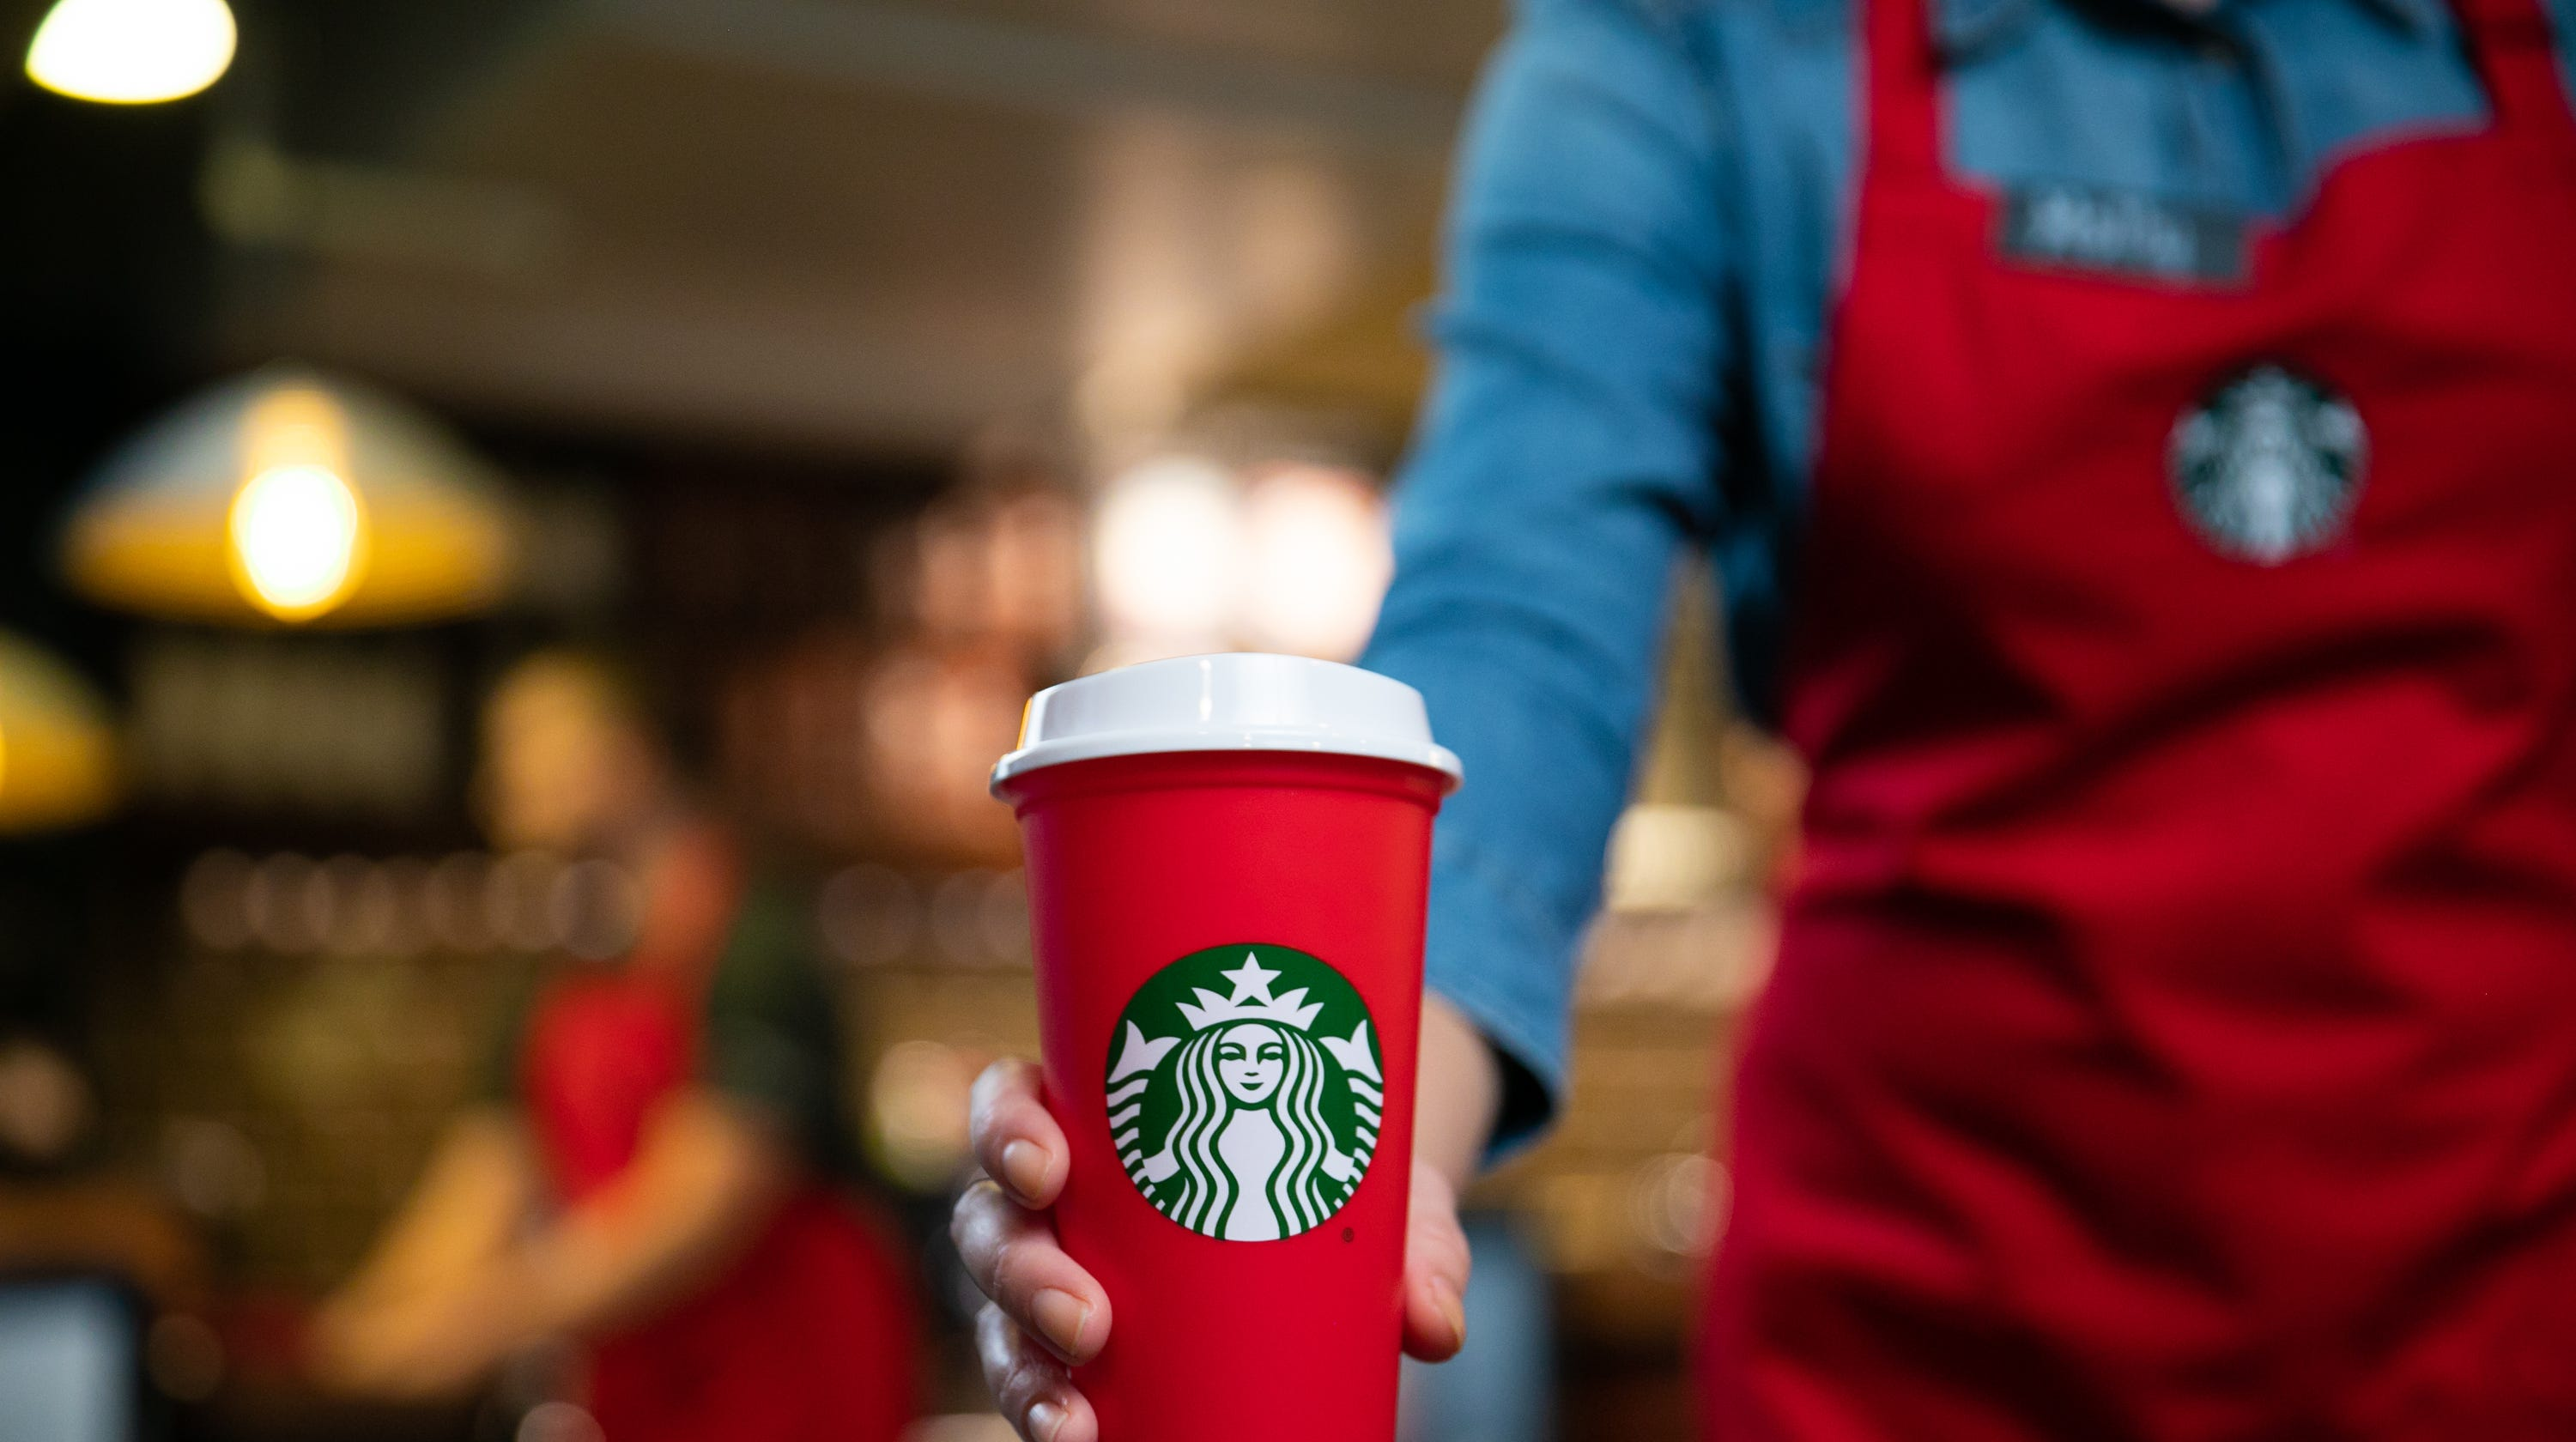 Starbucks Christmas Coffee Cups.Starbucks Holiday Cups Reusable Red Cup Drinks Pastries